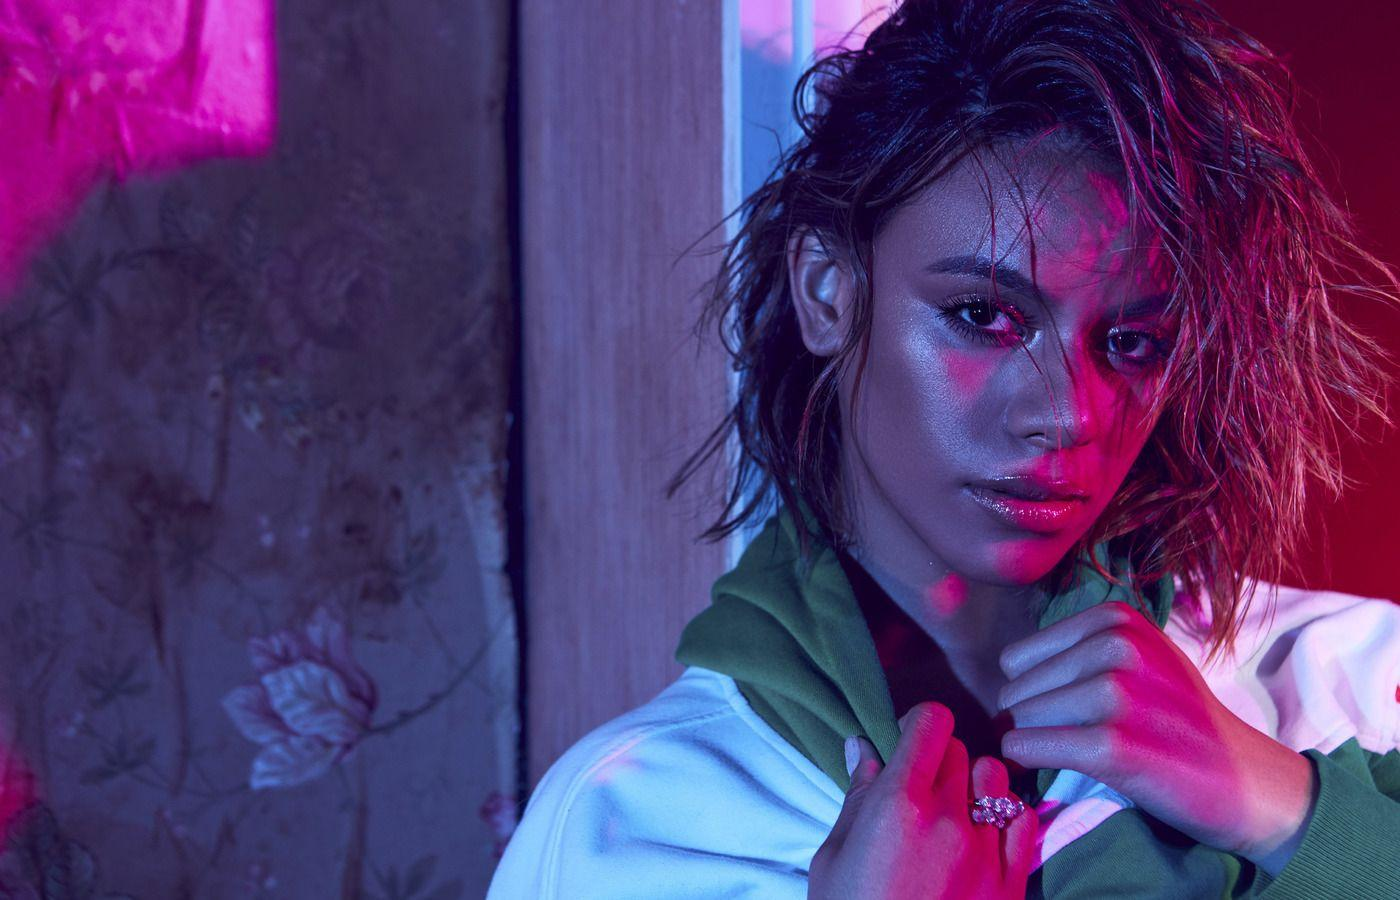 Dinah jane wallpapers wallpaper cave - Ty dolla sign hd wallpaper ...